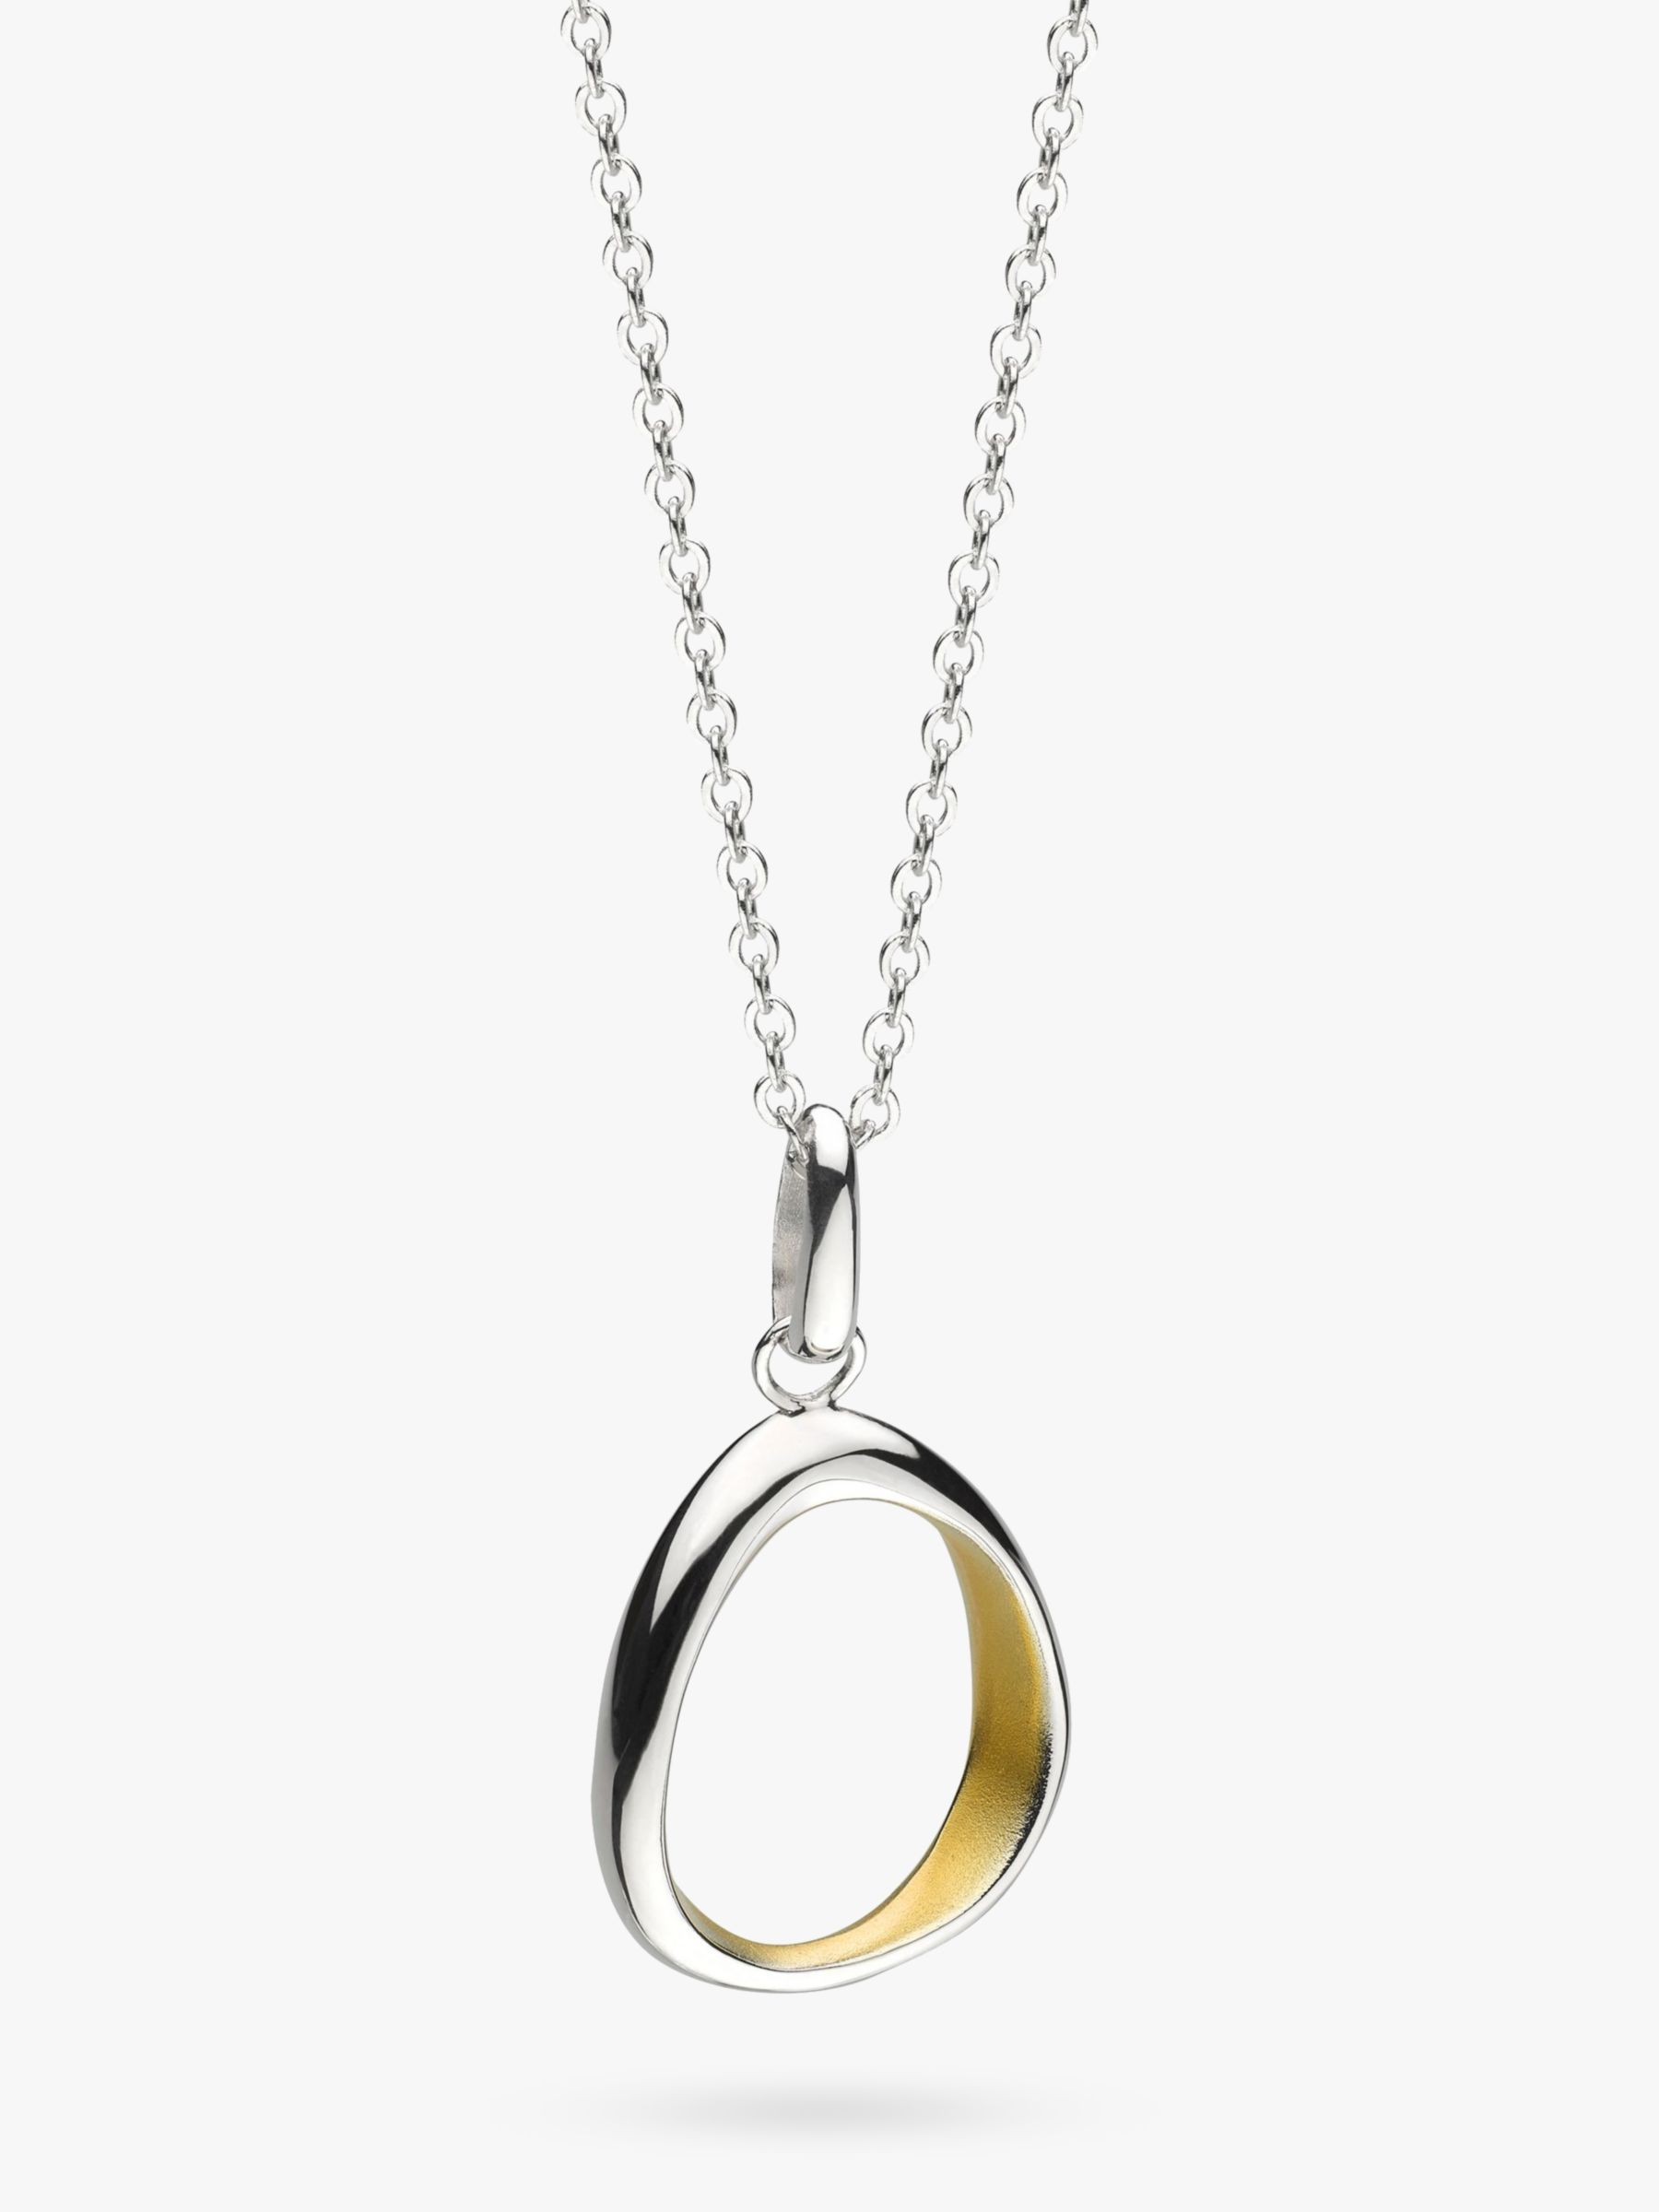 Kit Heath Kit Heath Coast Shore Medium Sandblast Pendant Necklace, Silver/Gold